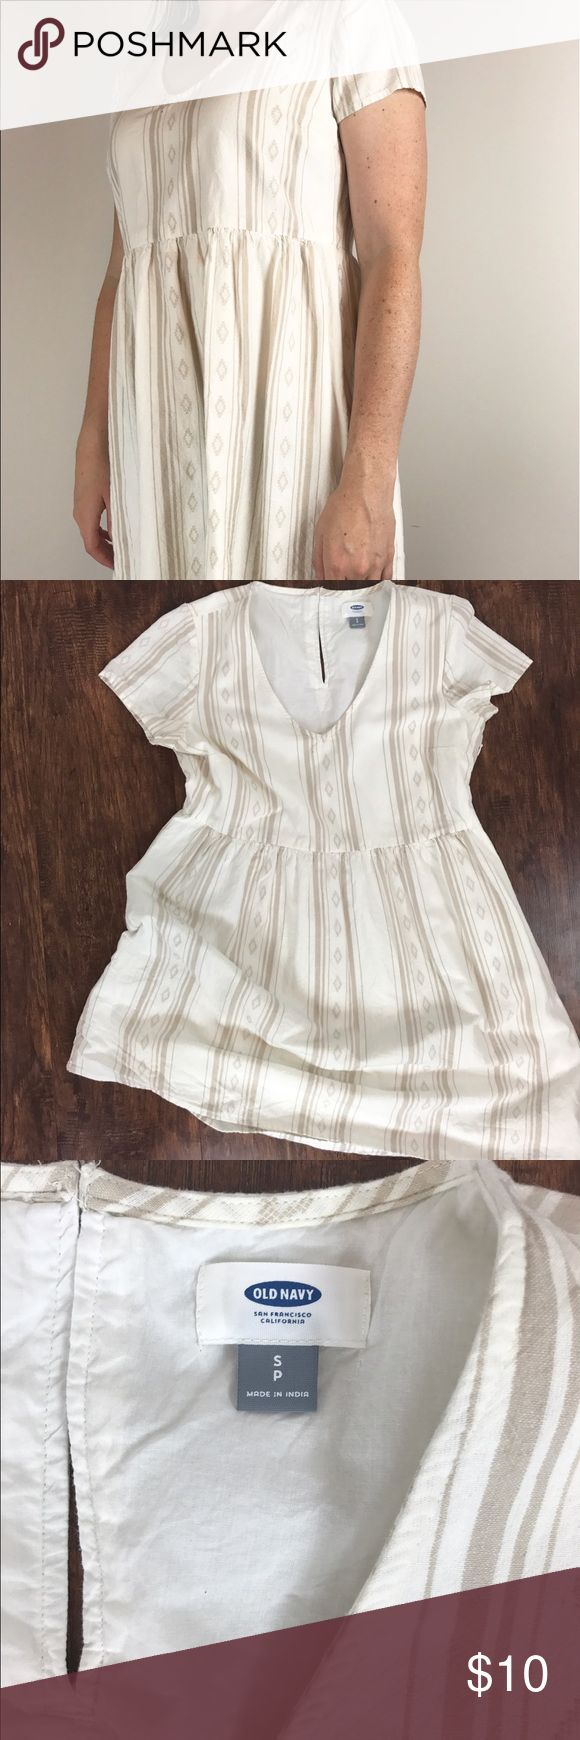 Old Navy Tribal Print Dress Adorable cream and tan tribal print dress. The perfect festival dress! Old Navy Dresses